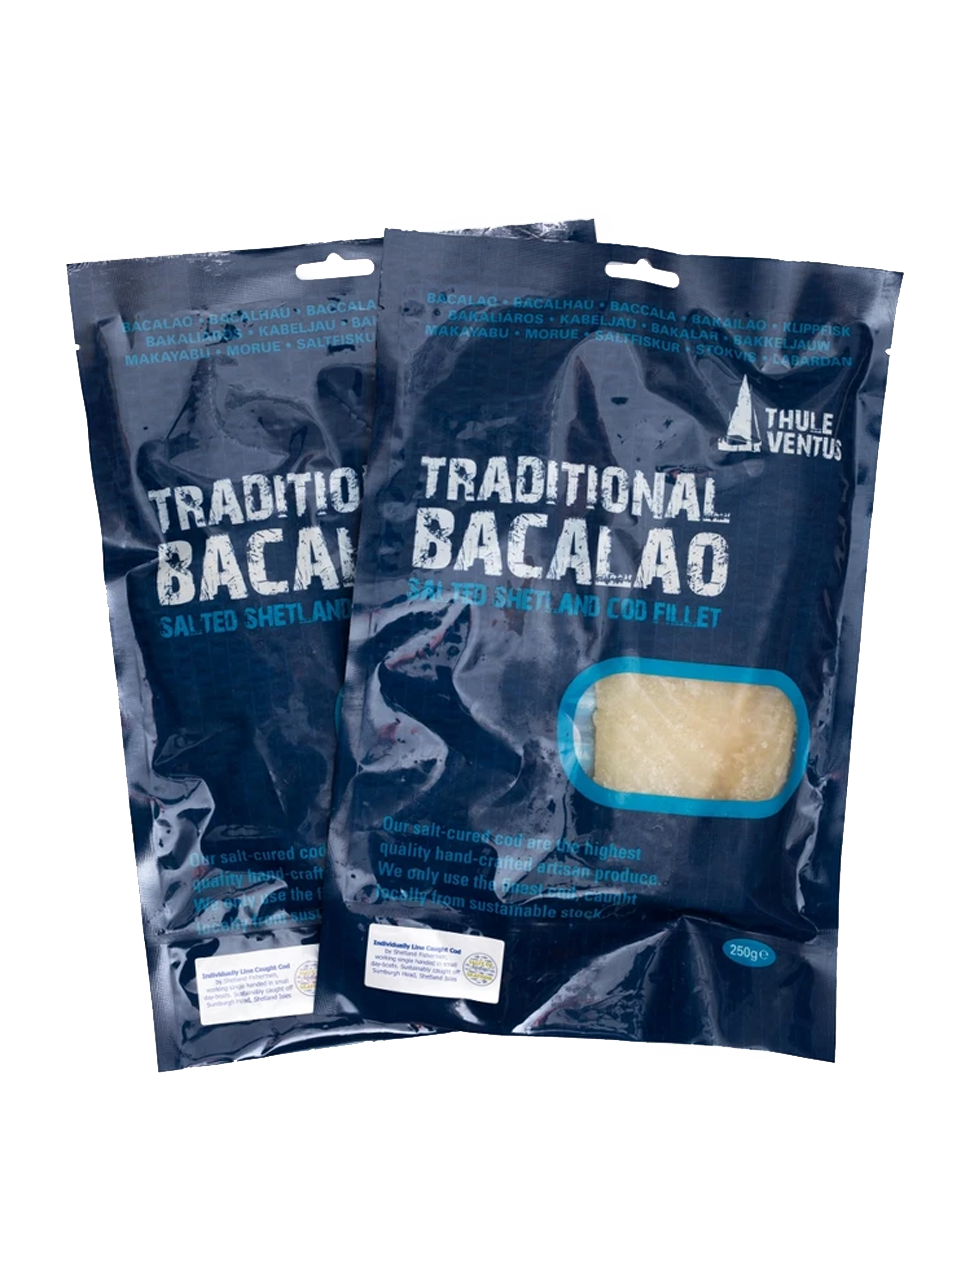 500g Wet Salt Cod (Bacalao)